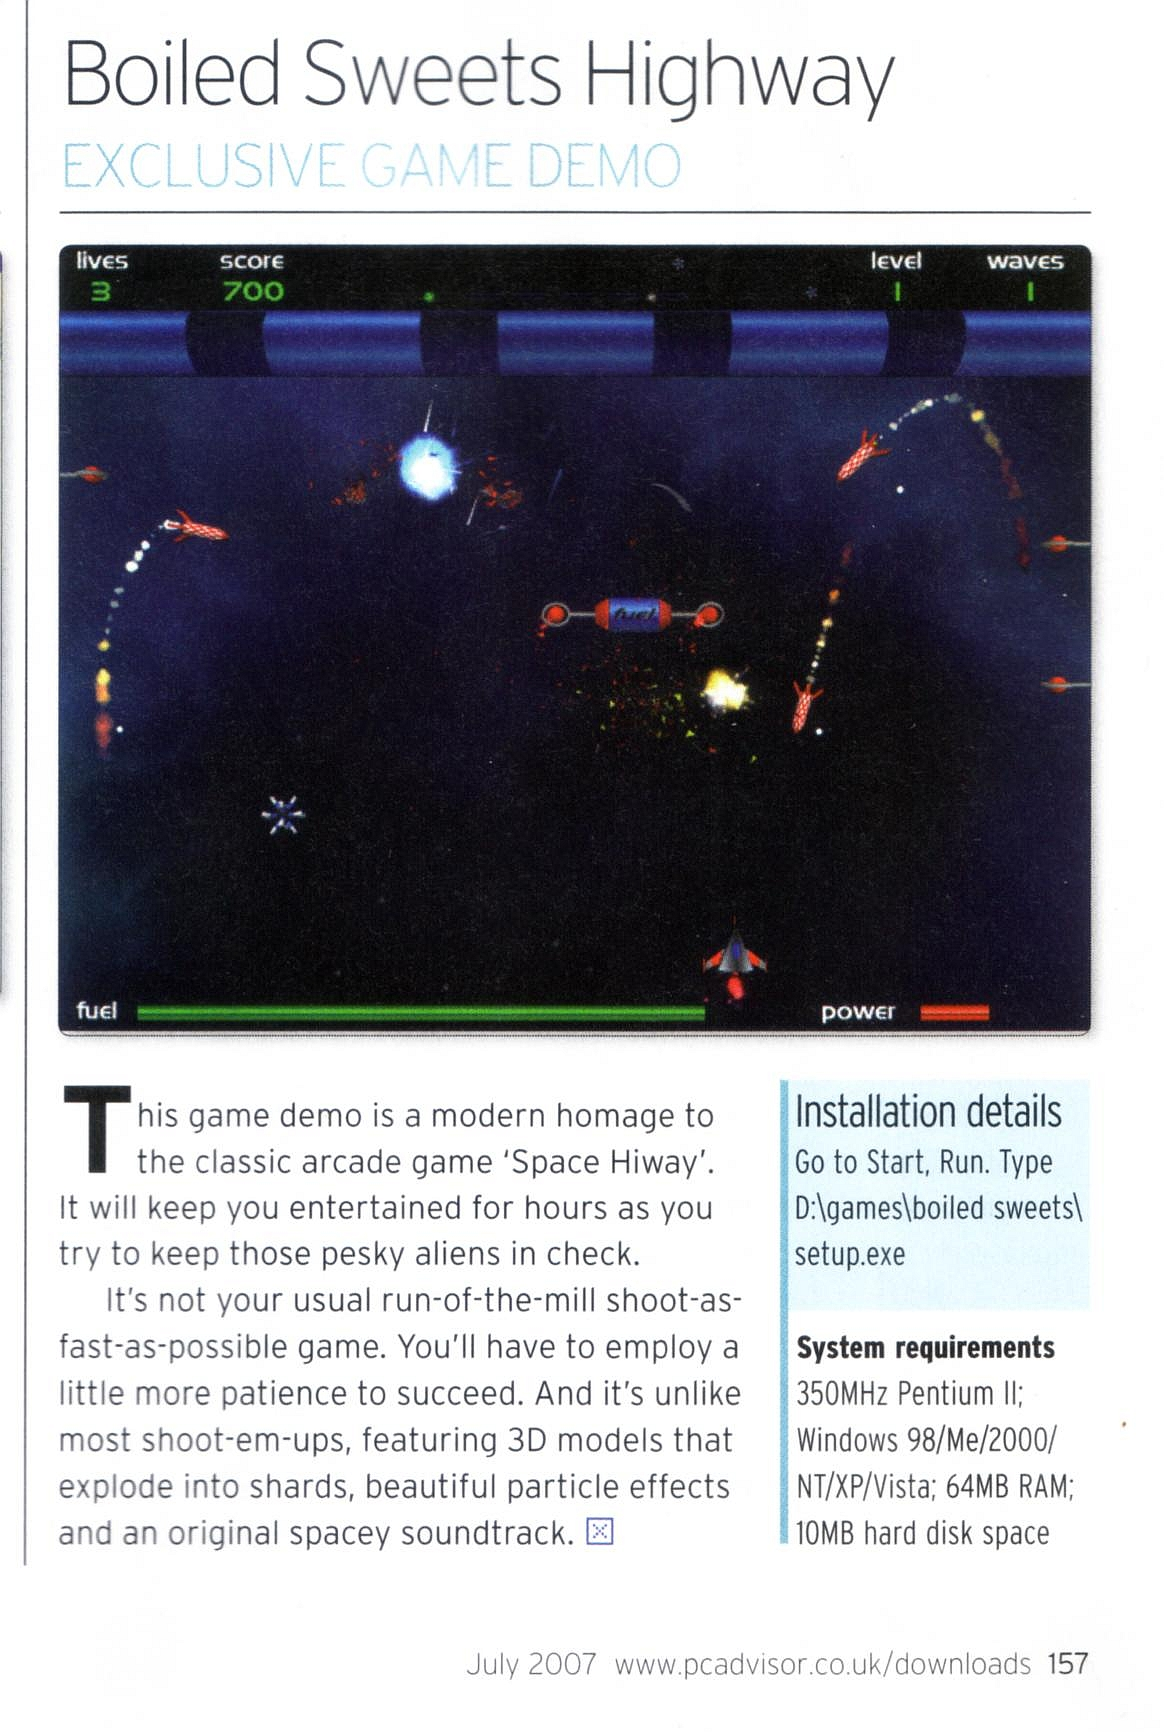 Intersteller Highway - PC Advisor June 2007